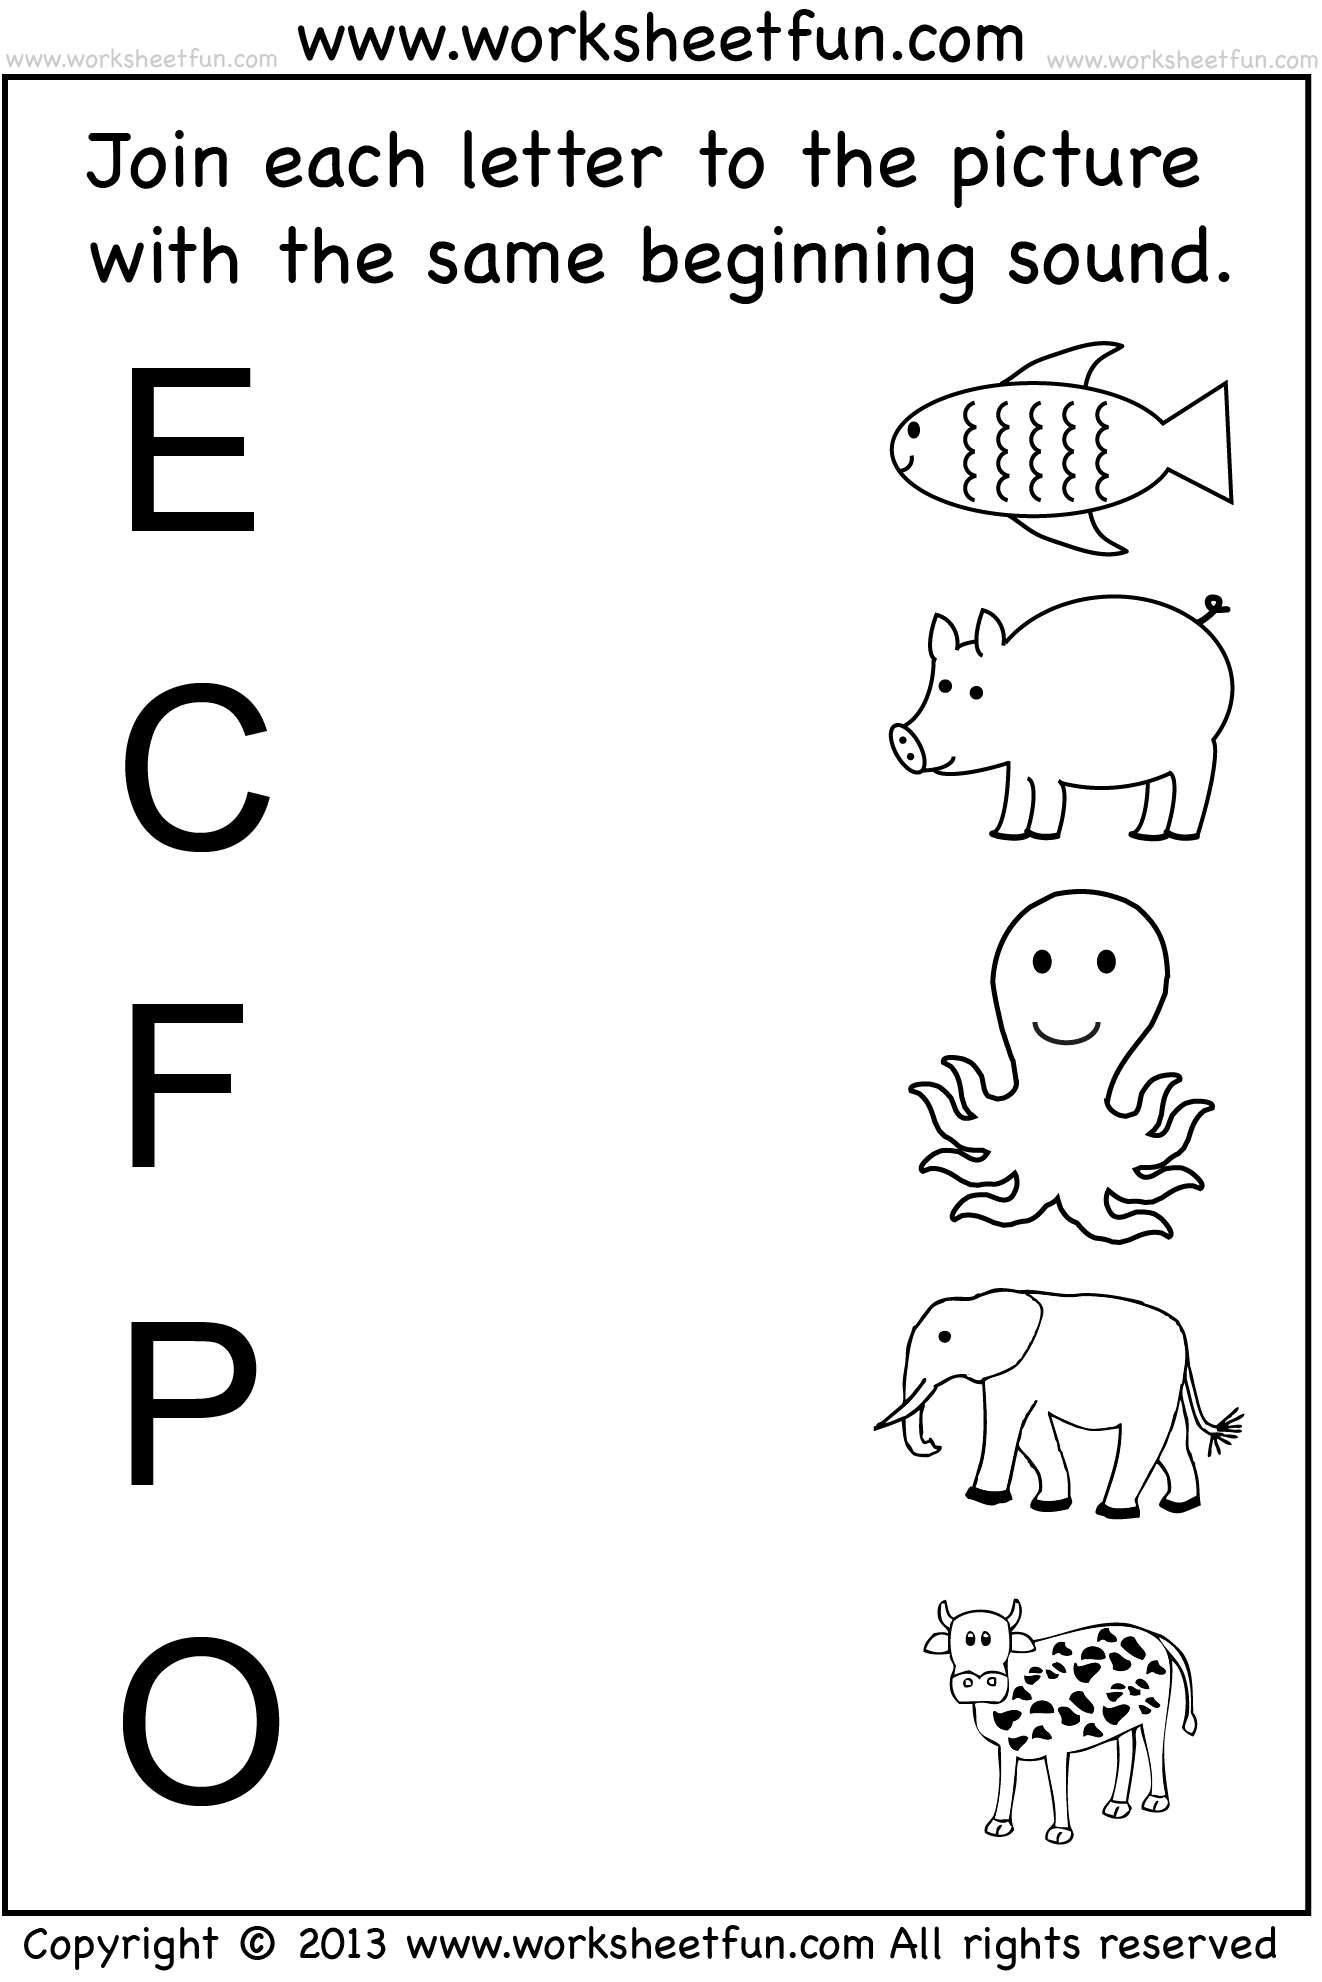 Worksheet Free Kindergarten Printables 1000 images about worksheets on pinterest dinosaurs preschool free printable kindergarten and worksheets